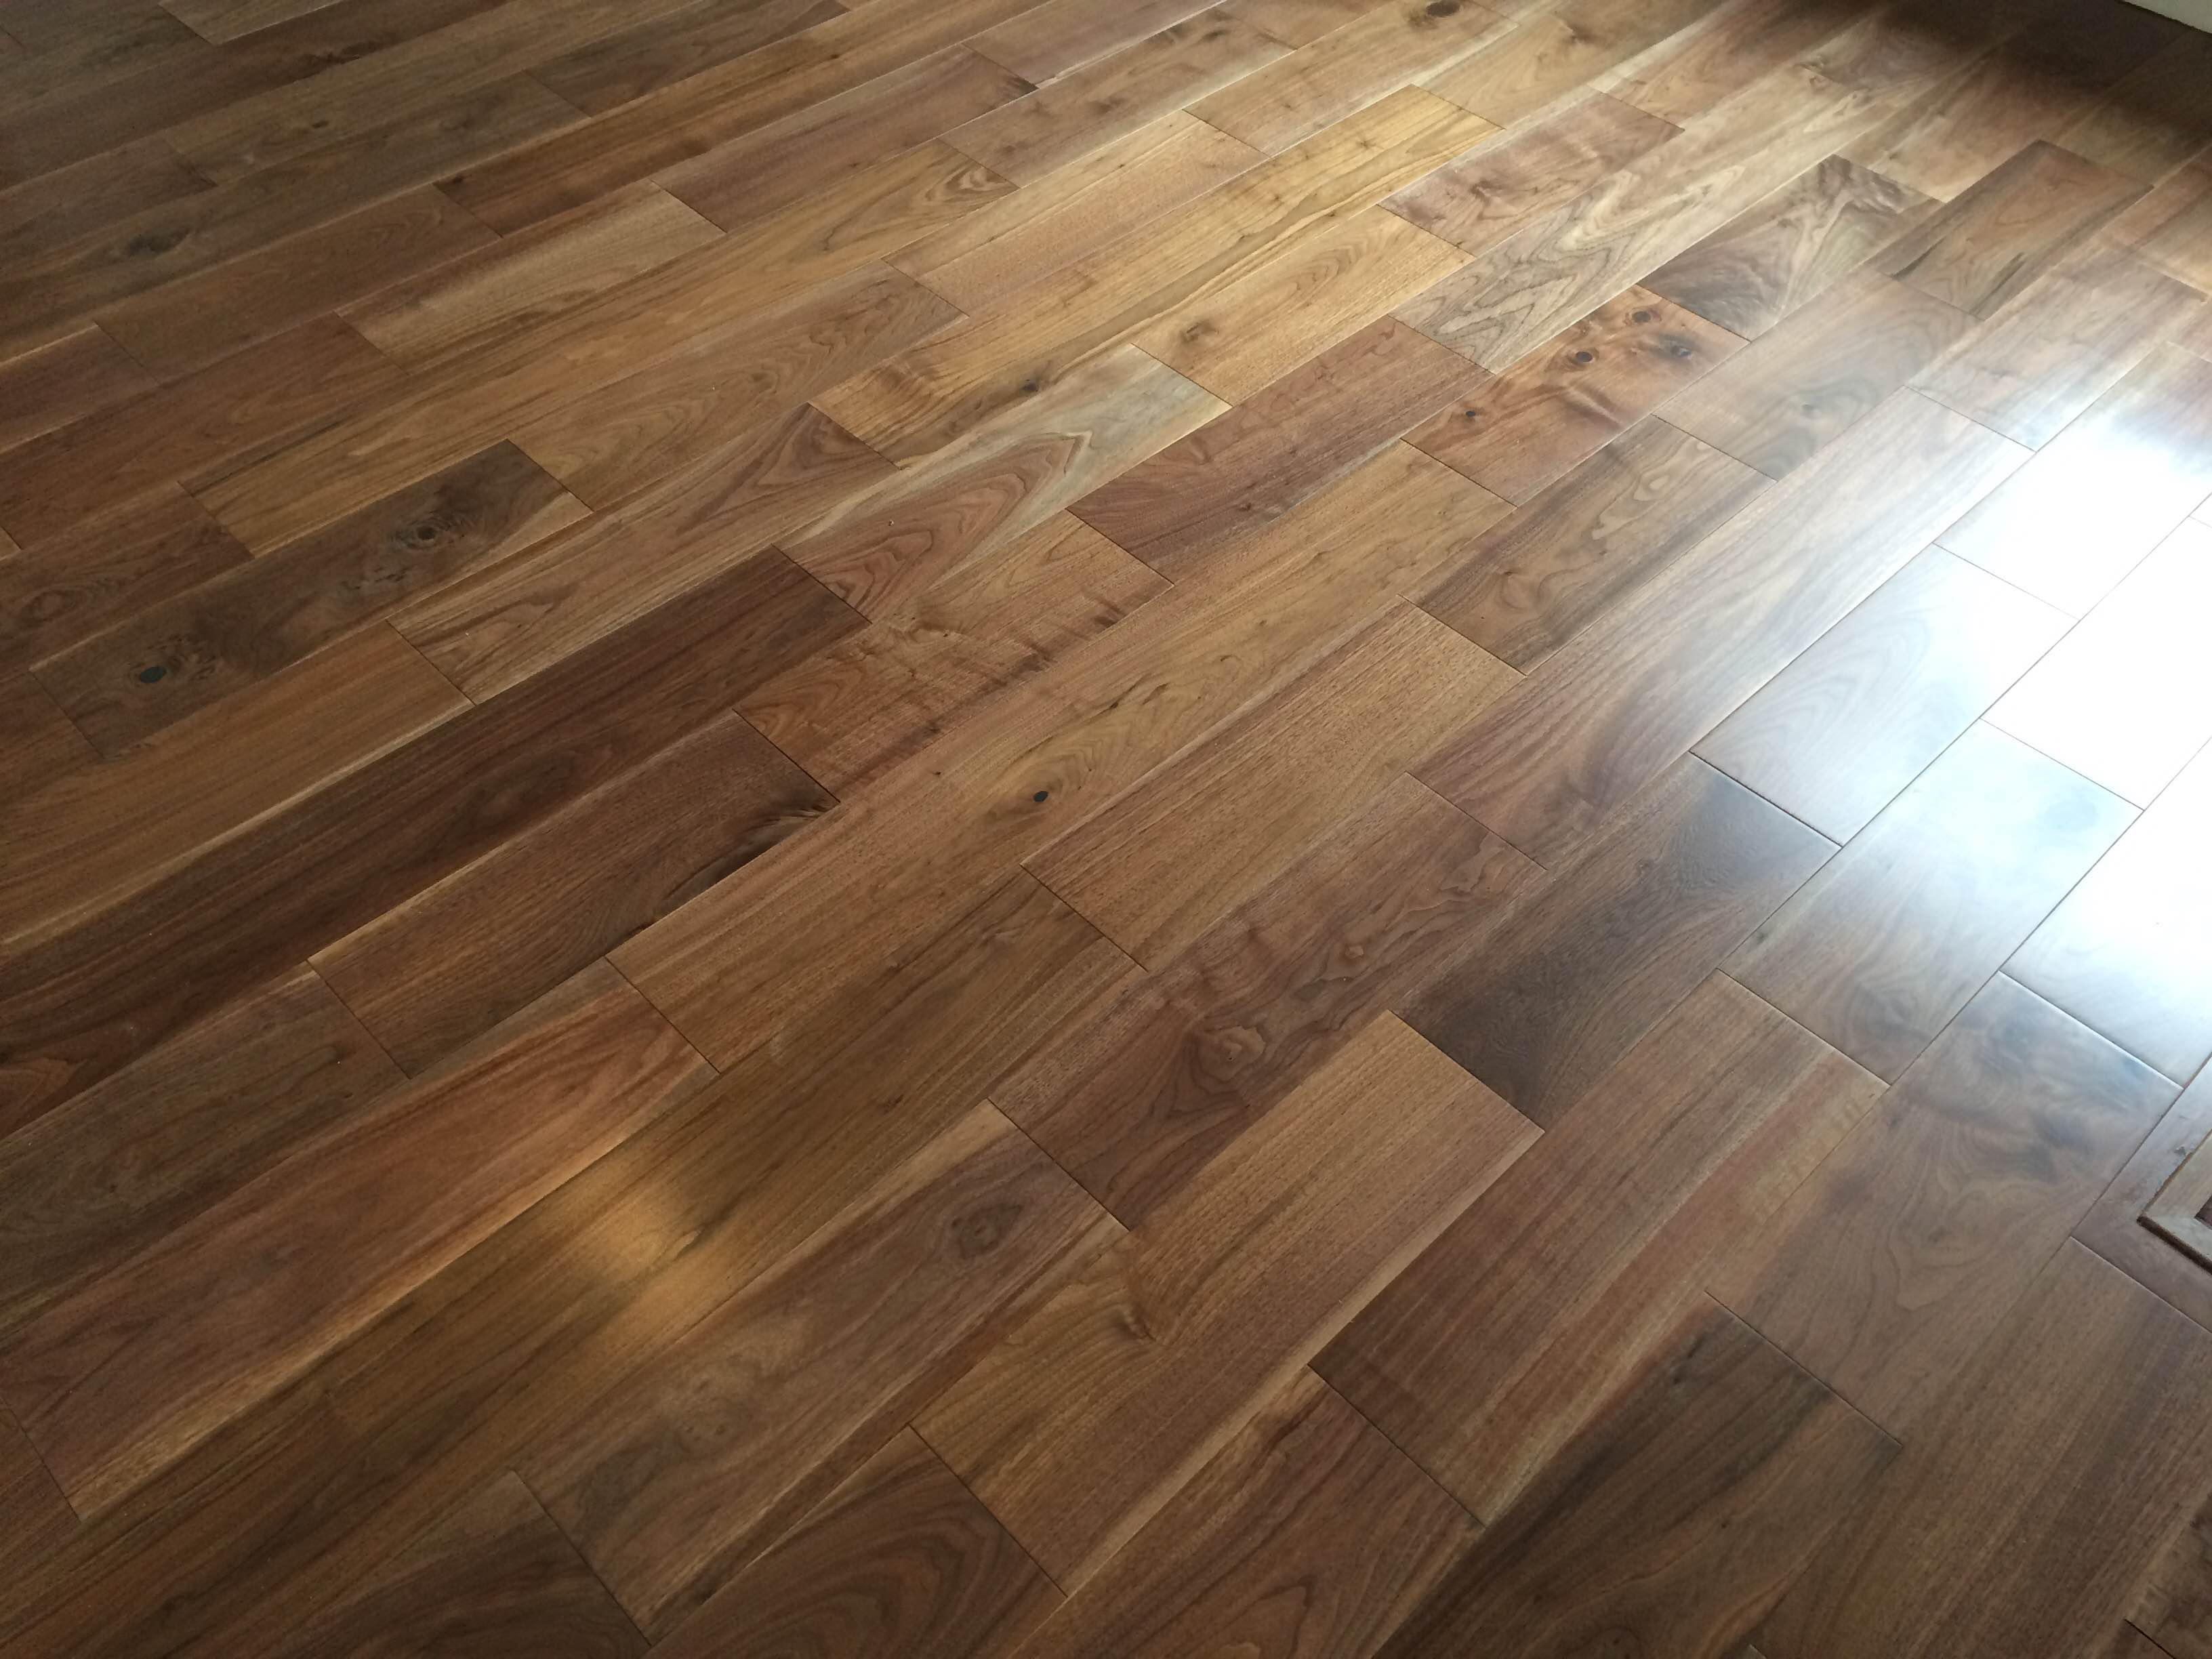 Wood Flooring Product : Black american walnut wood london stock super engineered